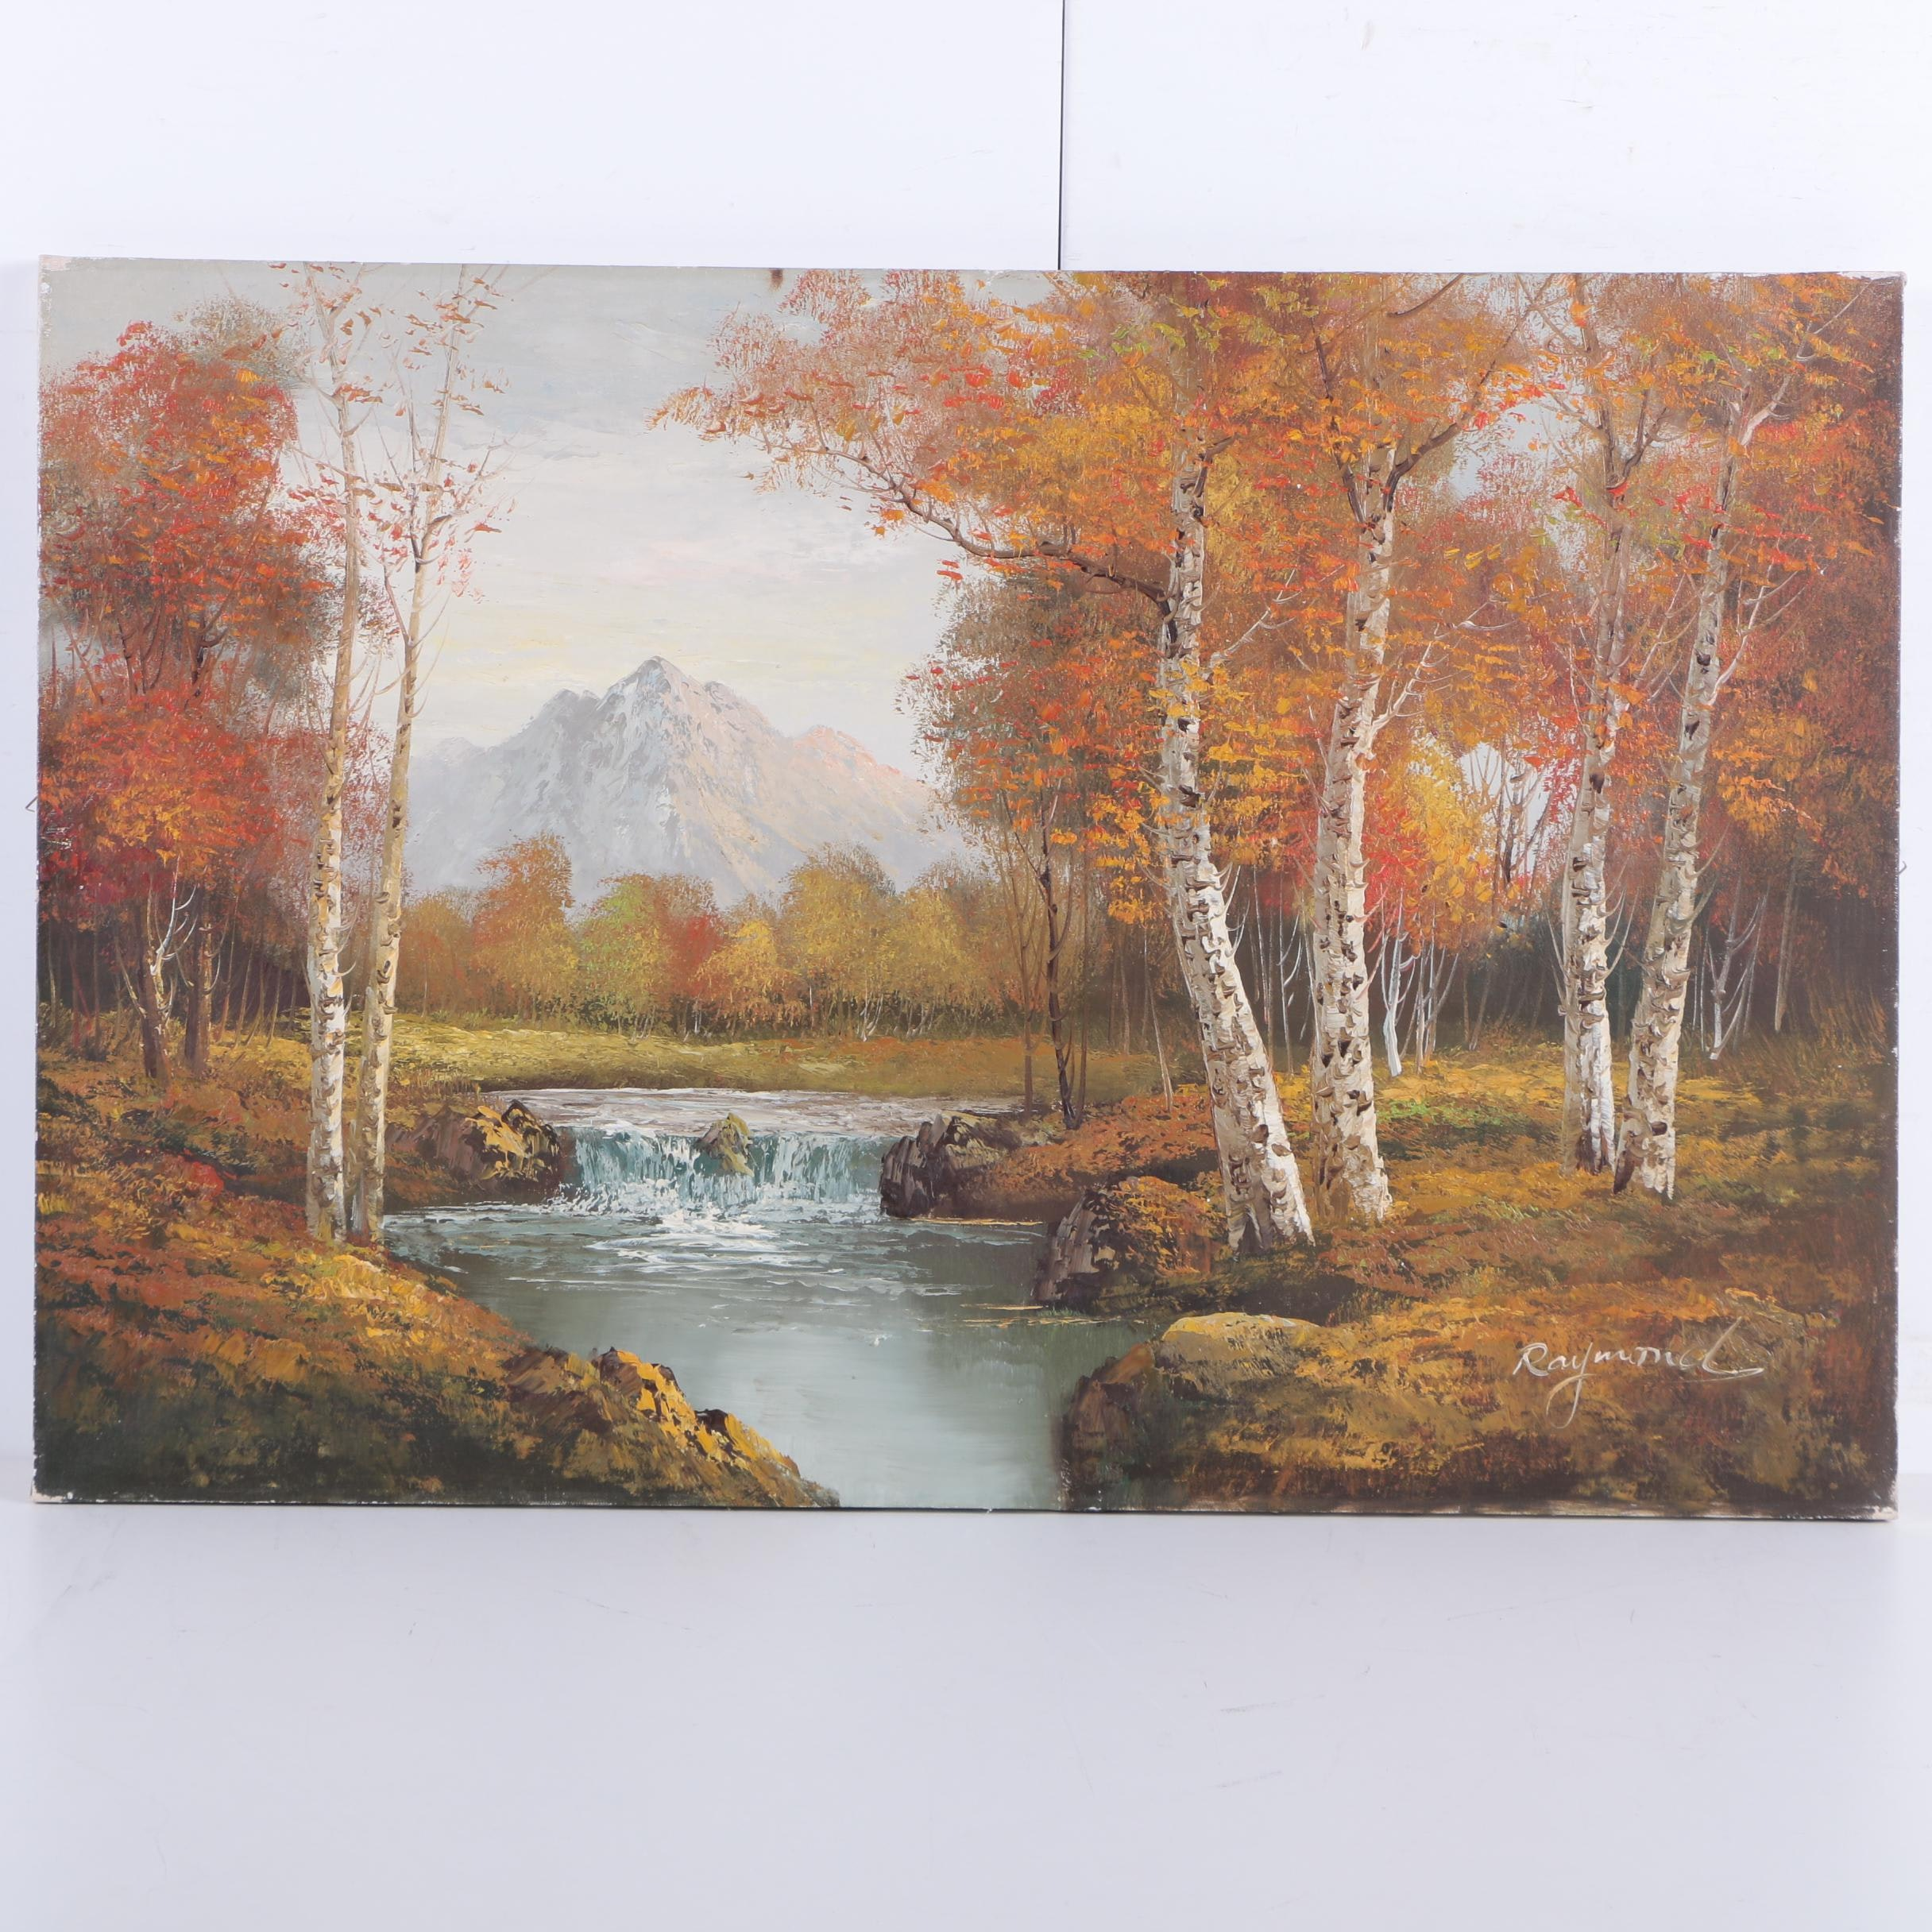 Raymond Oil Painting on Canvas of Autumn Landscape with Birches